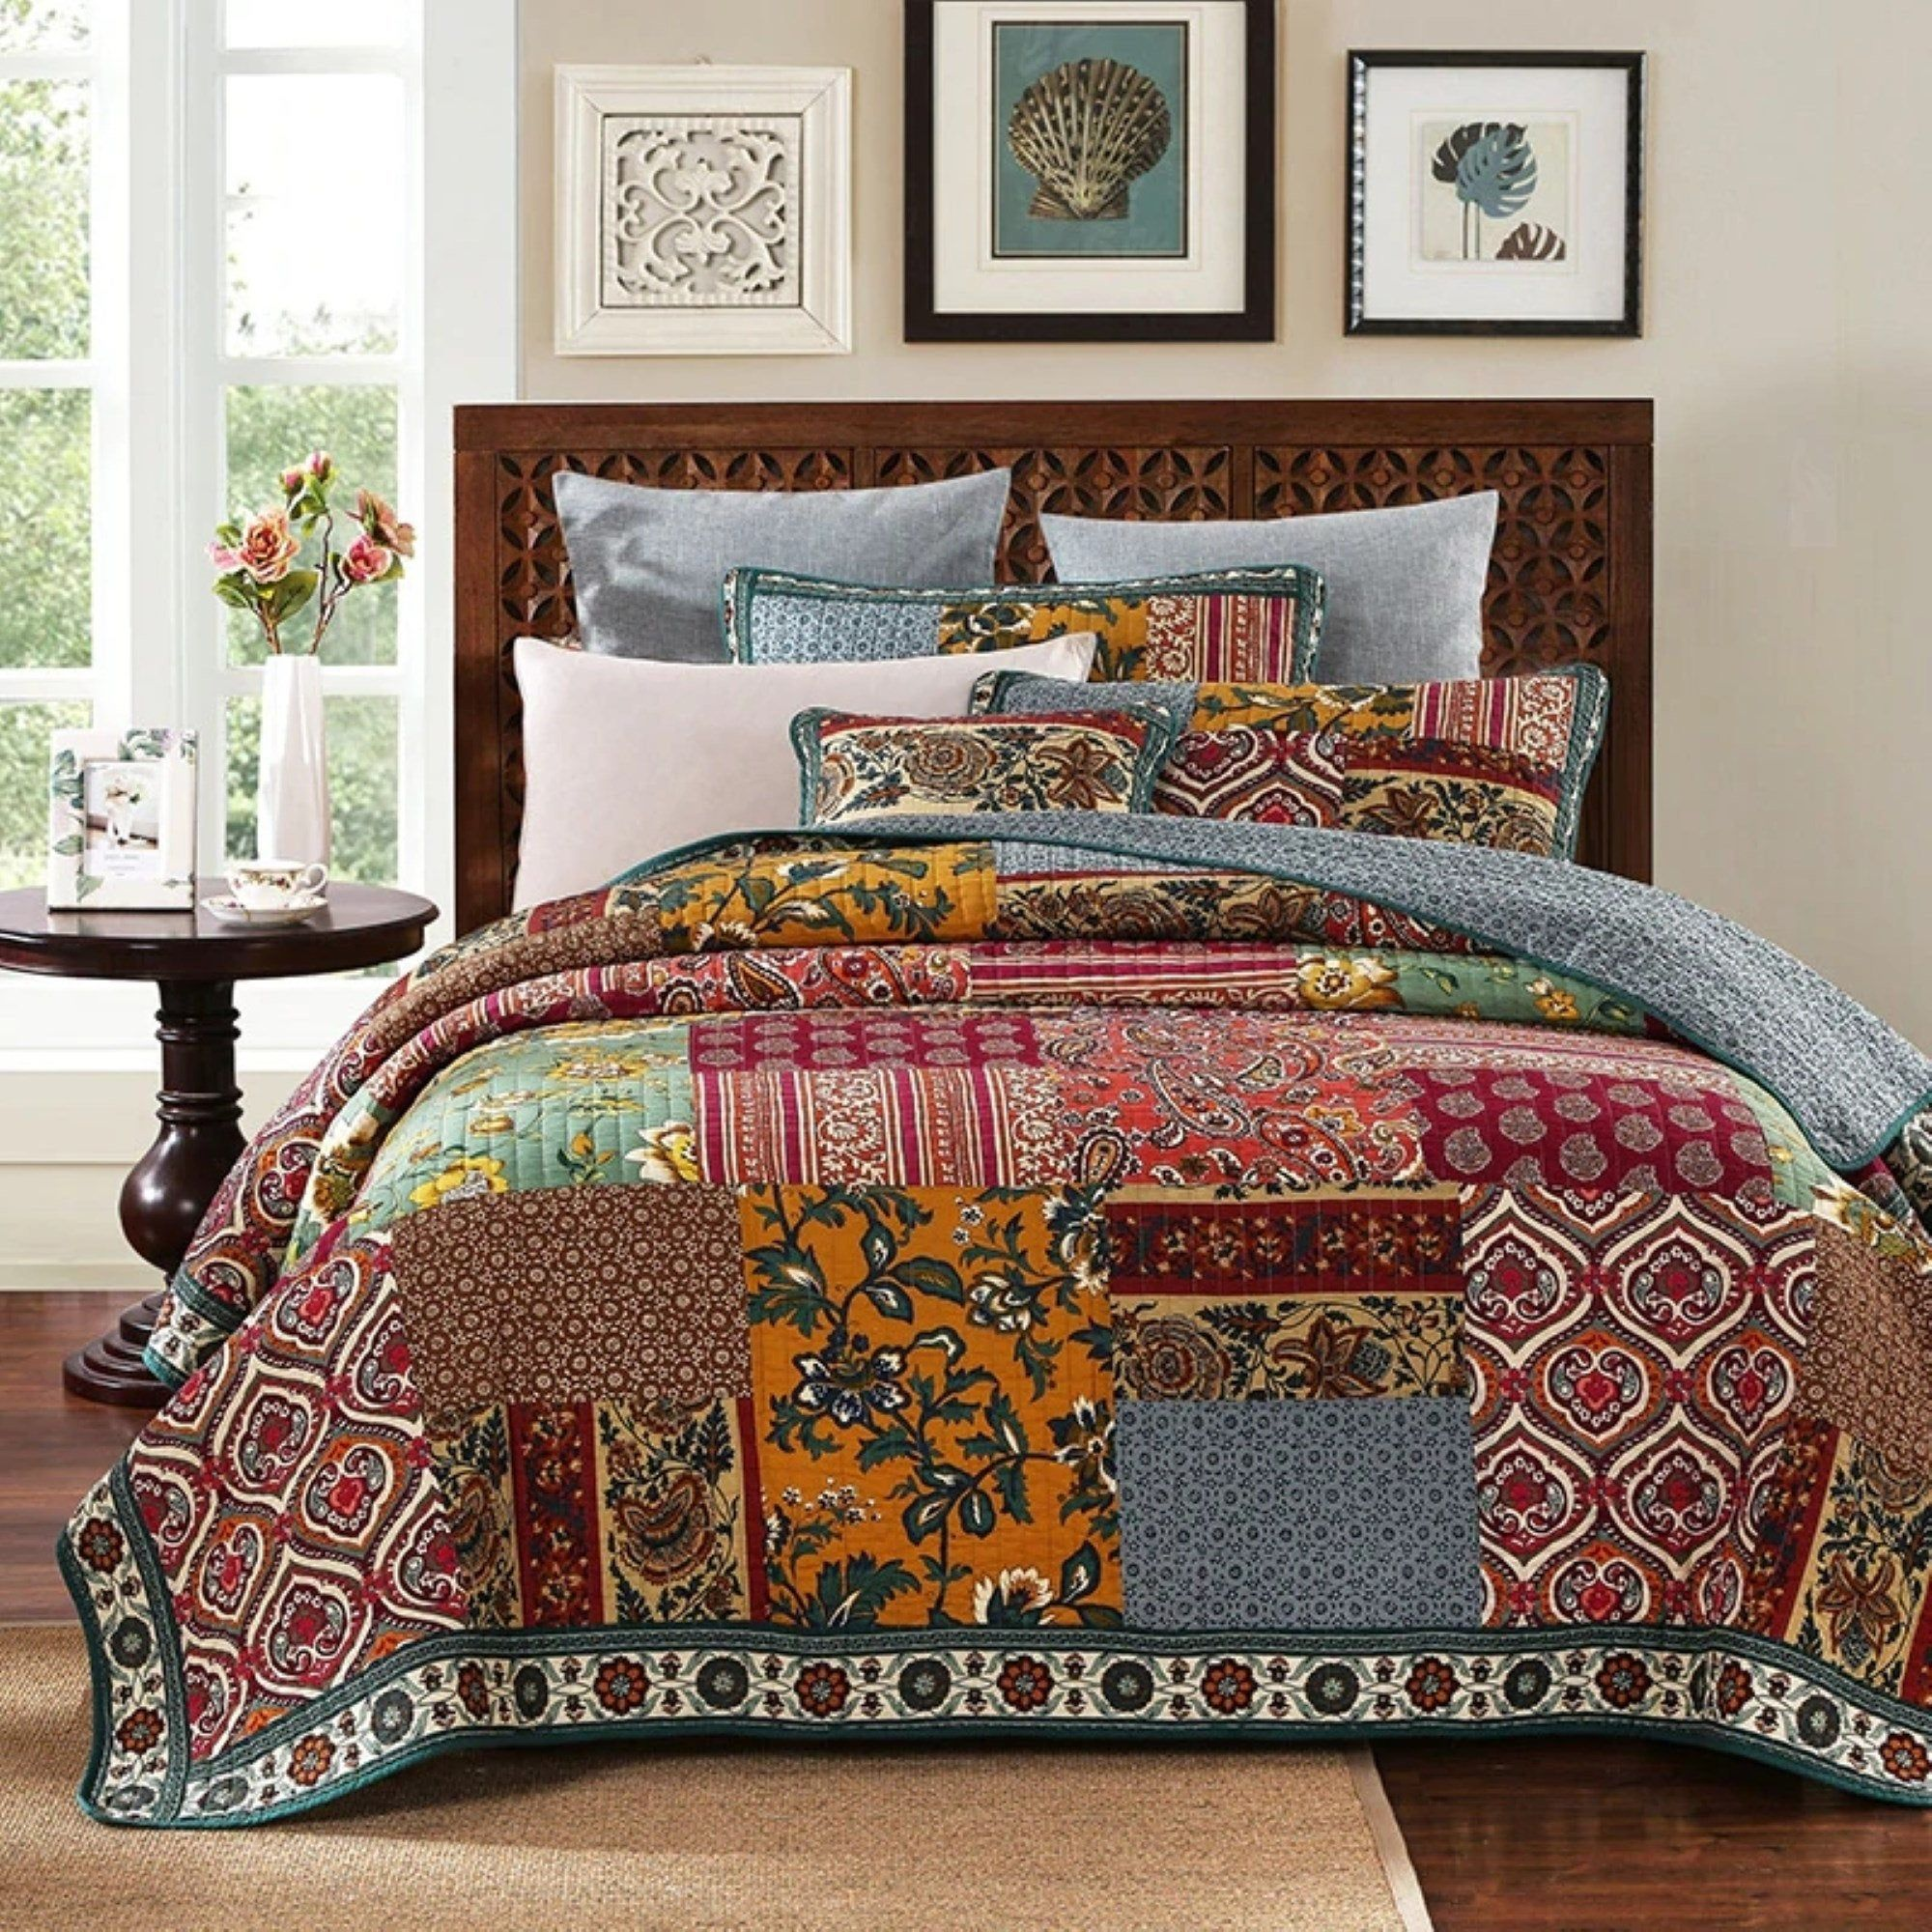 Hand Made King Size Quilt Patchwork Quilt Set With Pillows Farmhouse Quilted Blanket Rag Quilt One Off Rustic Quilt Bedding Set In 2020 Quilt Sets Bedding Bedspread Set Chic Bedding Sets